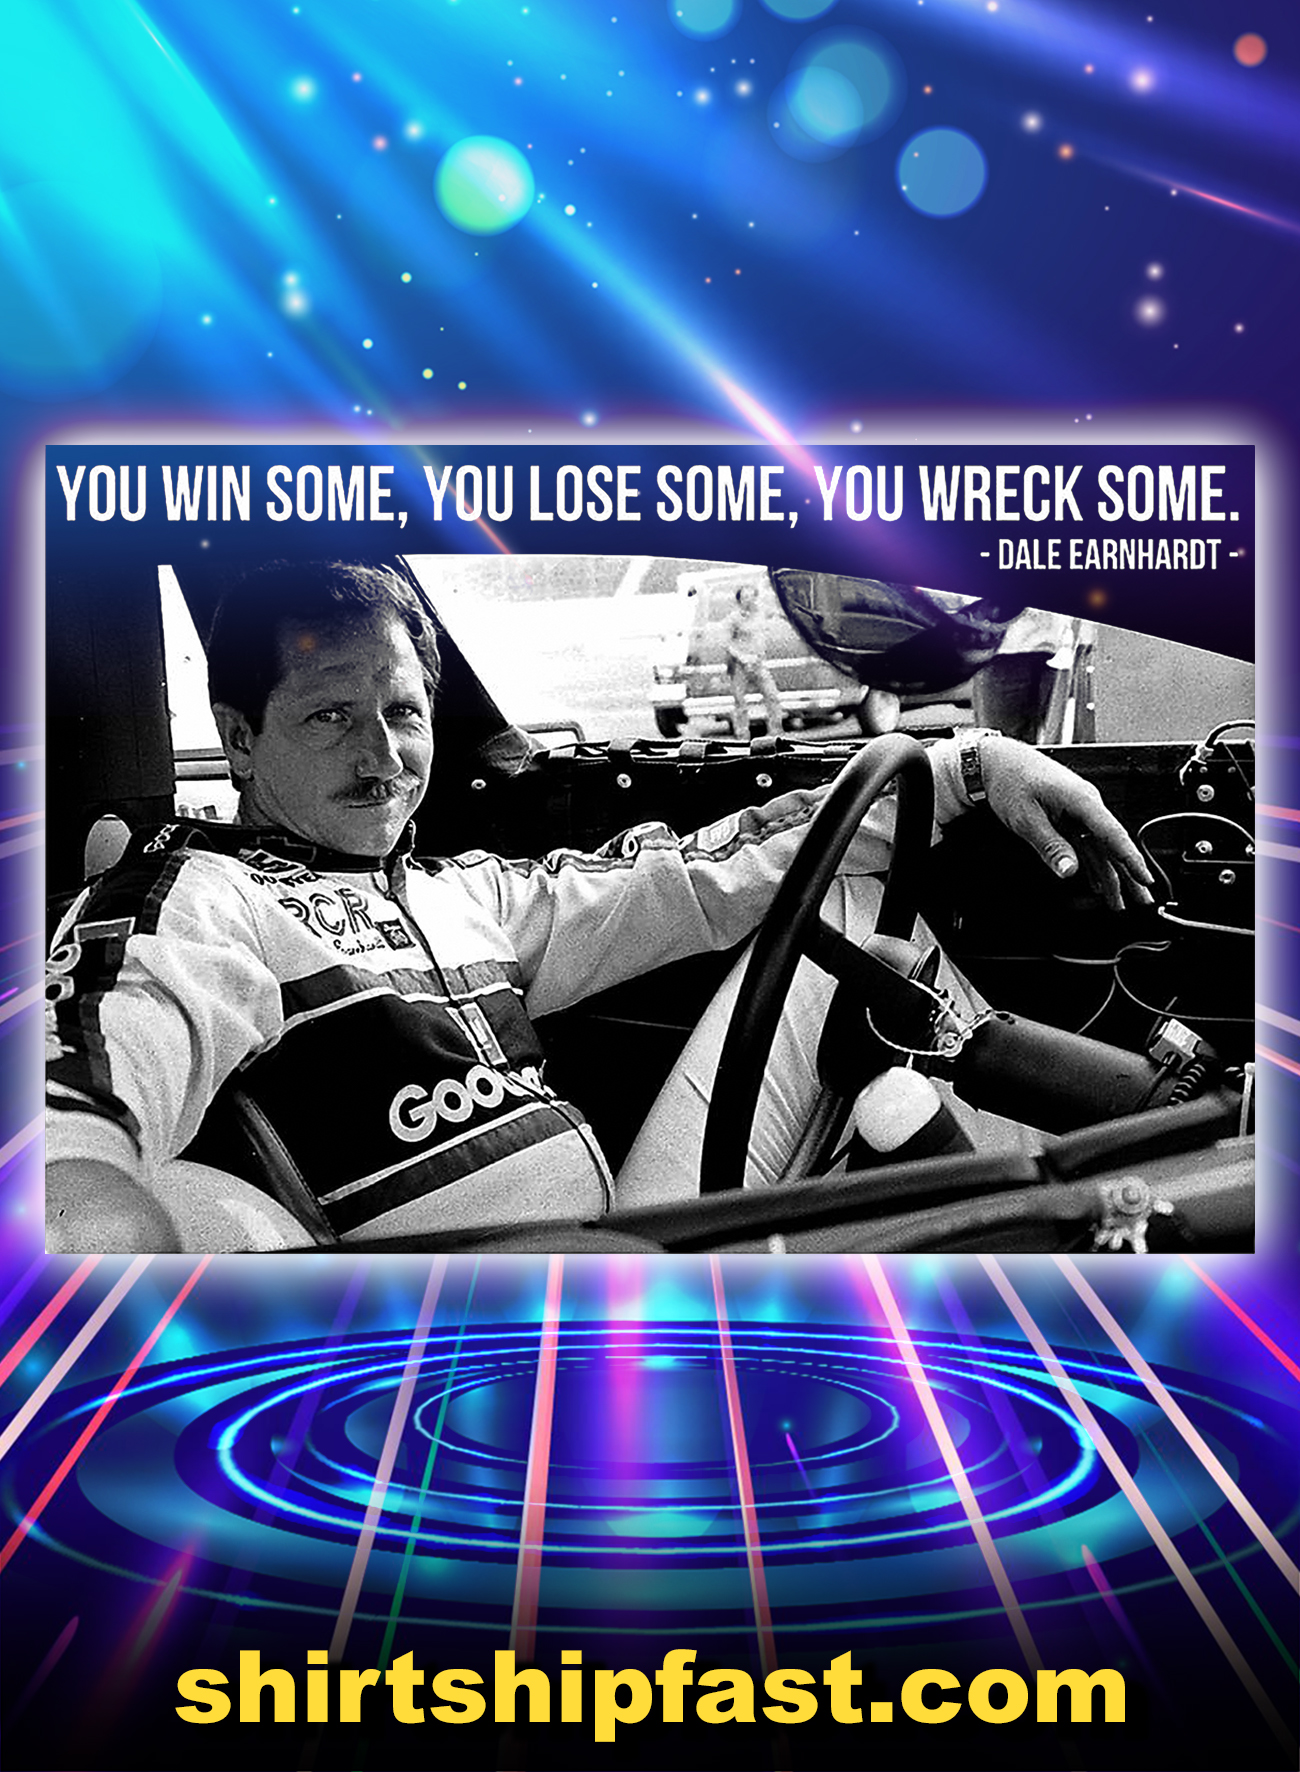 Dale earnhardt you win some you lose some you wreck some poster - A4